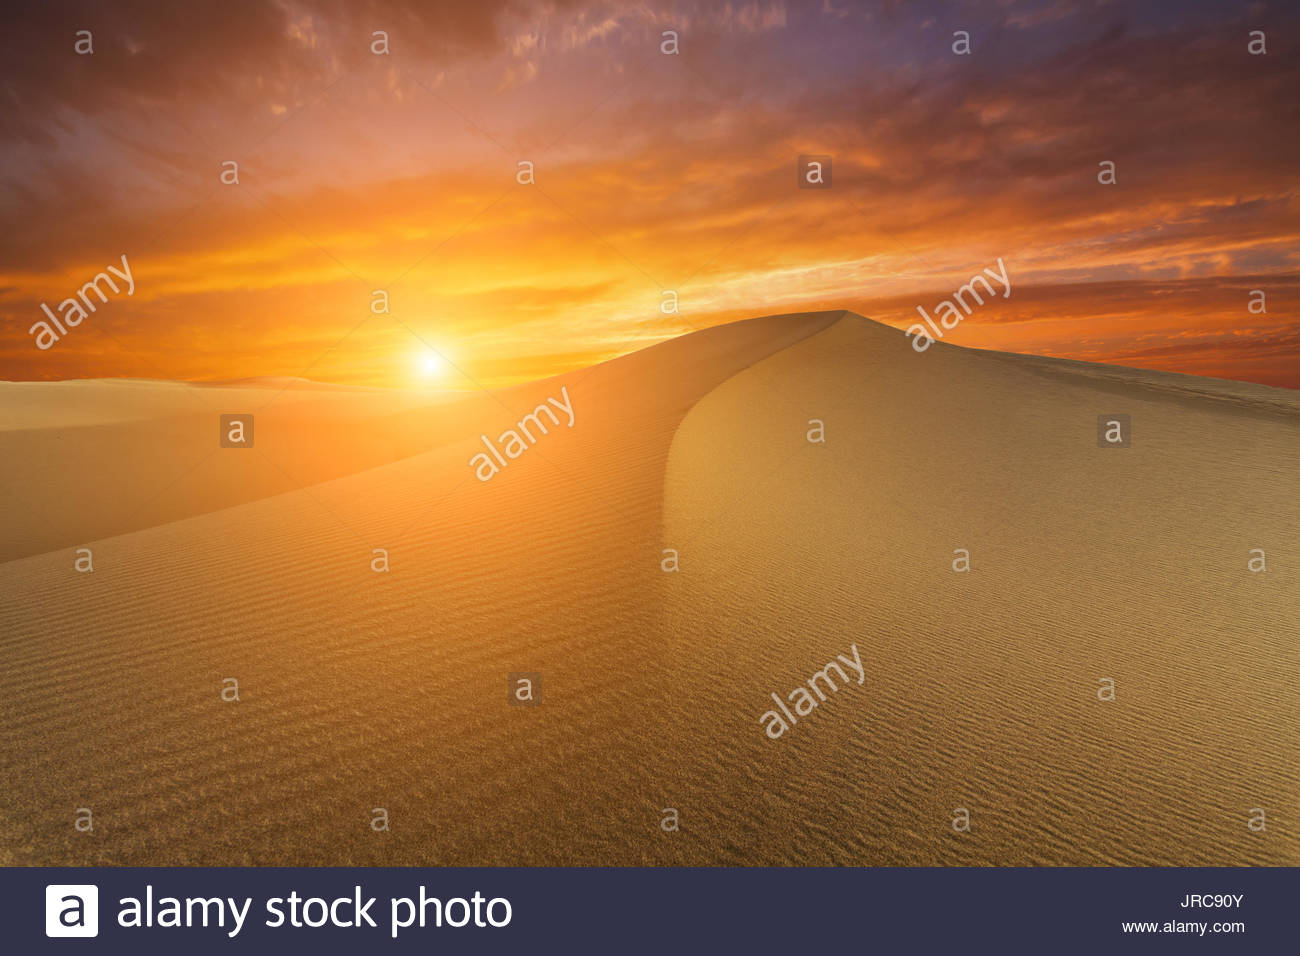 Beautiful desert landscape on the background of a fiery sunset. - Stock Image